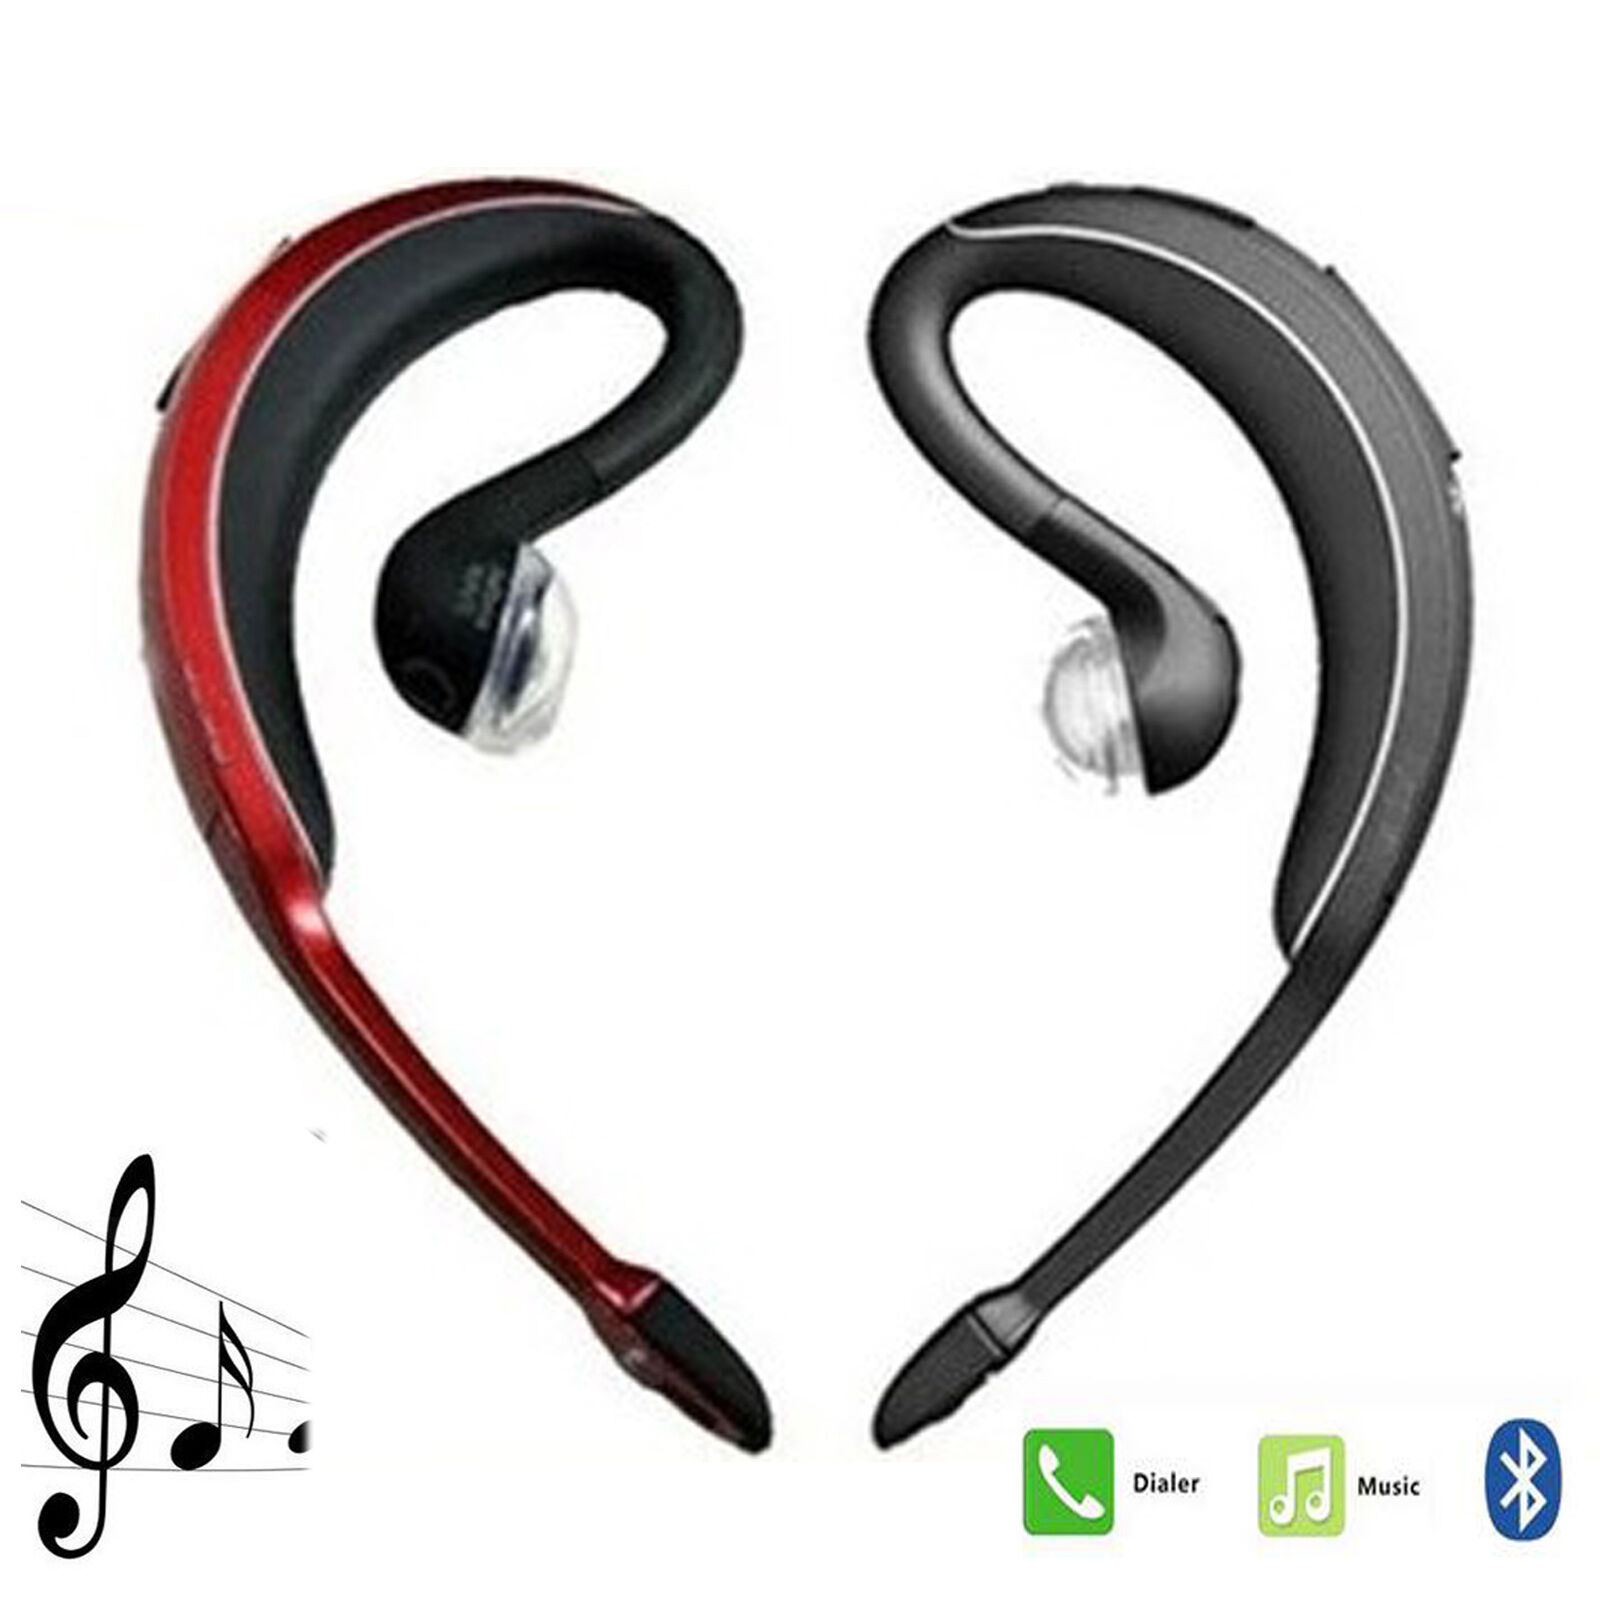 how to play music through bluetooth headset iphone 7